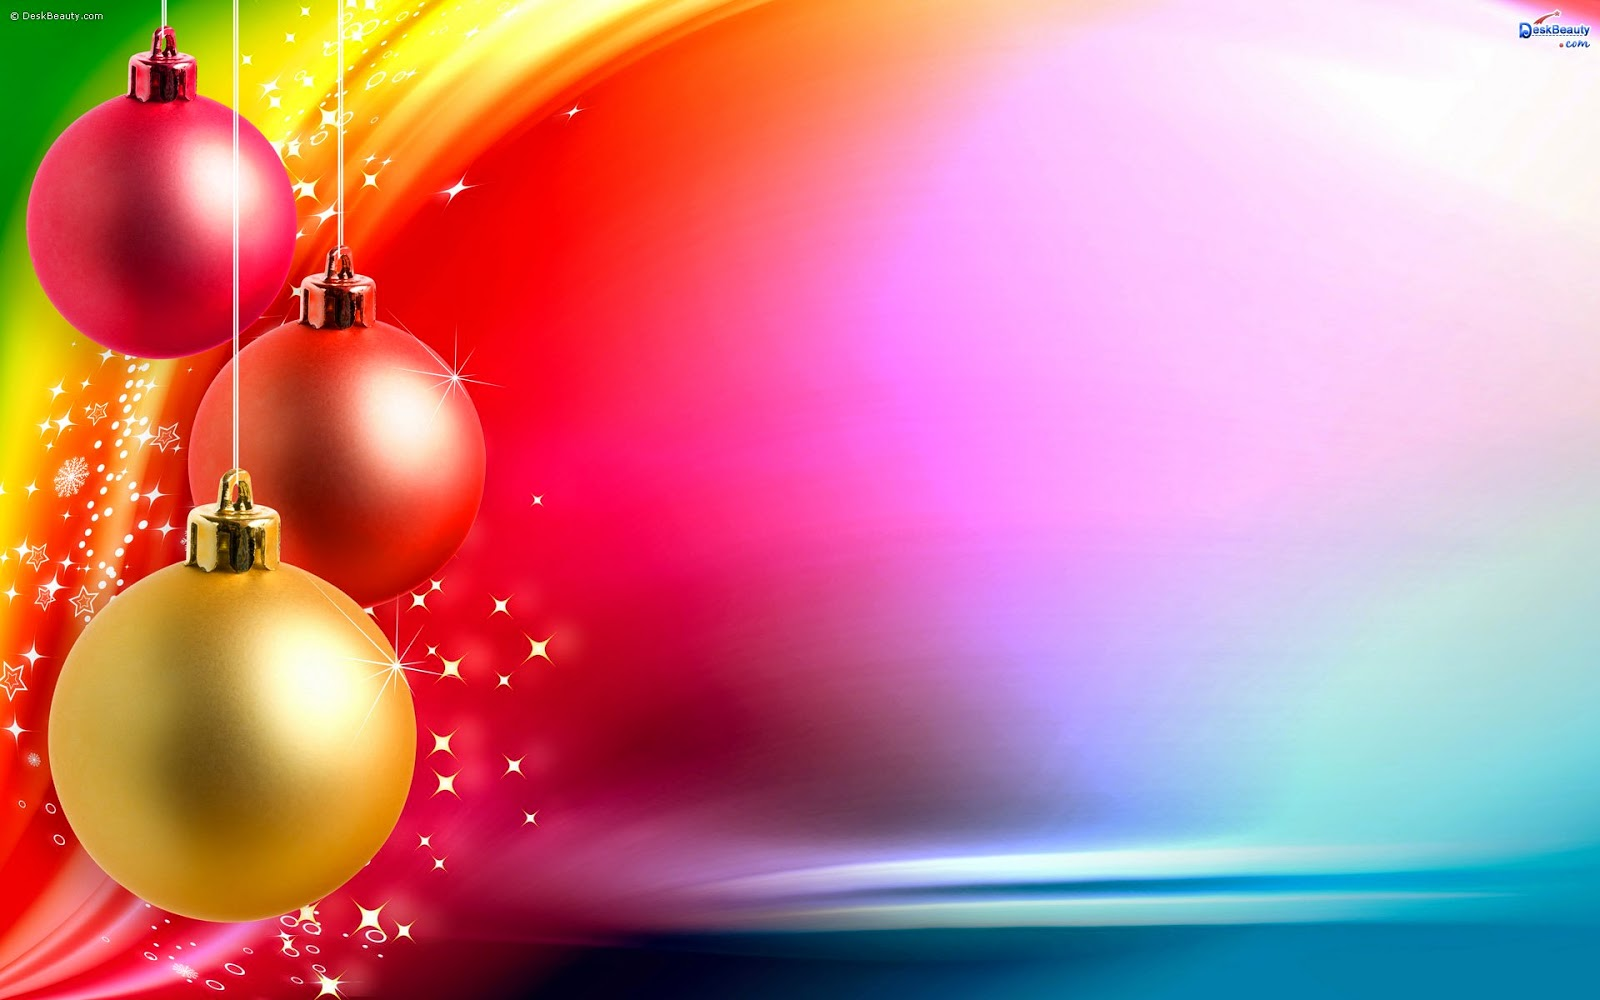 Gallery Free Christmas Wallpapers